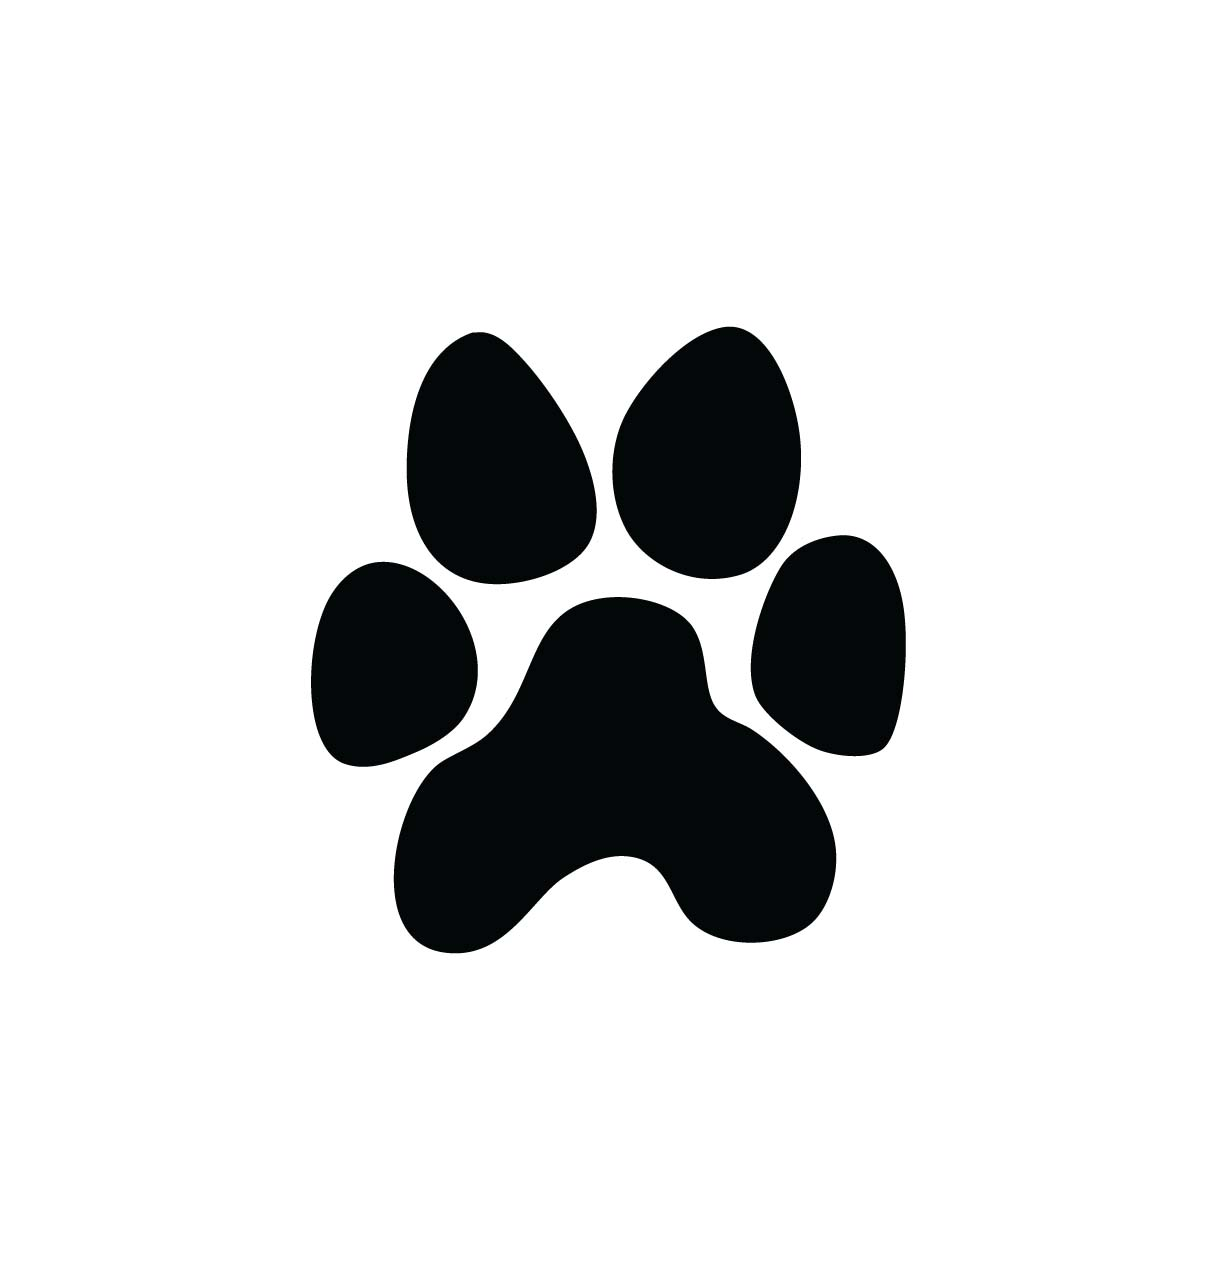 64 Images Of Cat Paw Print Clip Art You Can Use These Free Cliparts